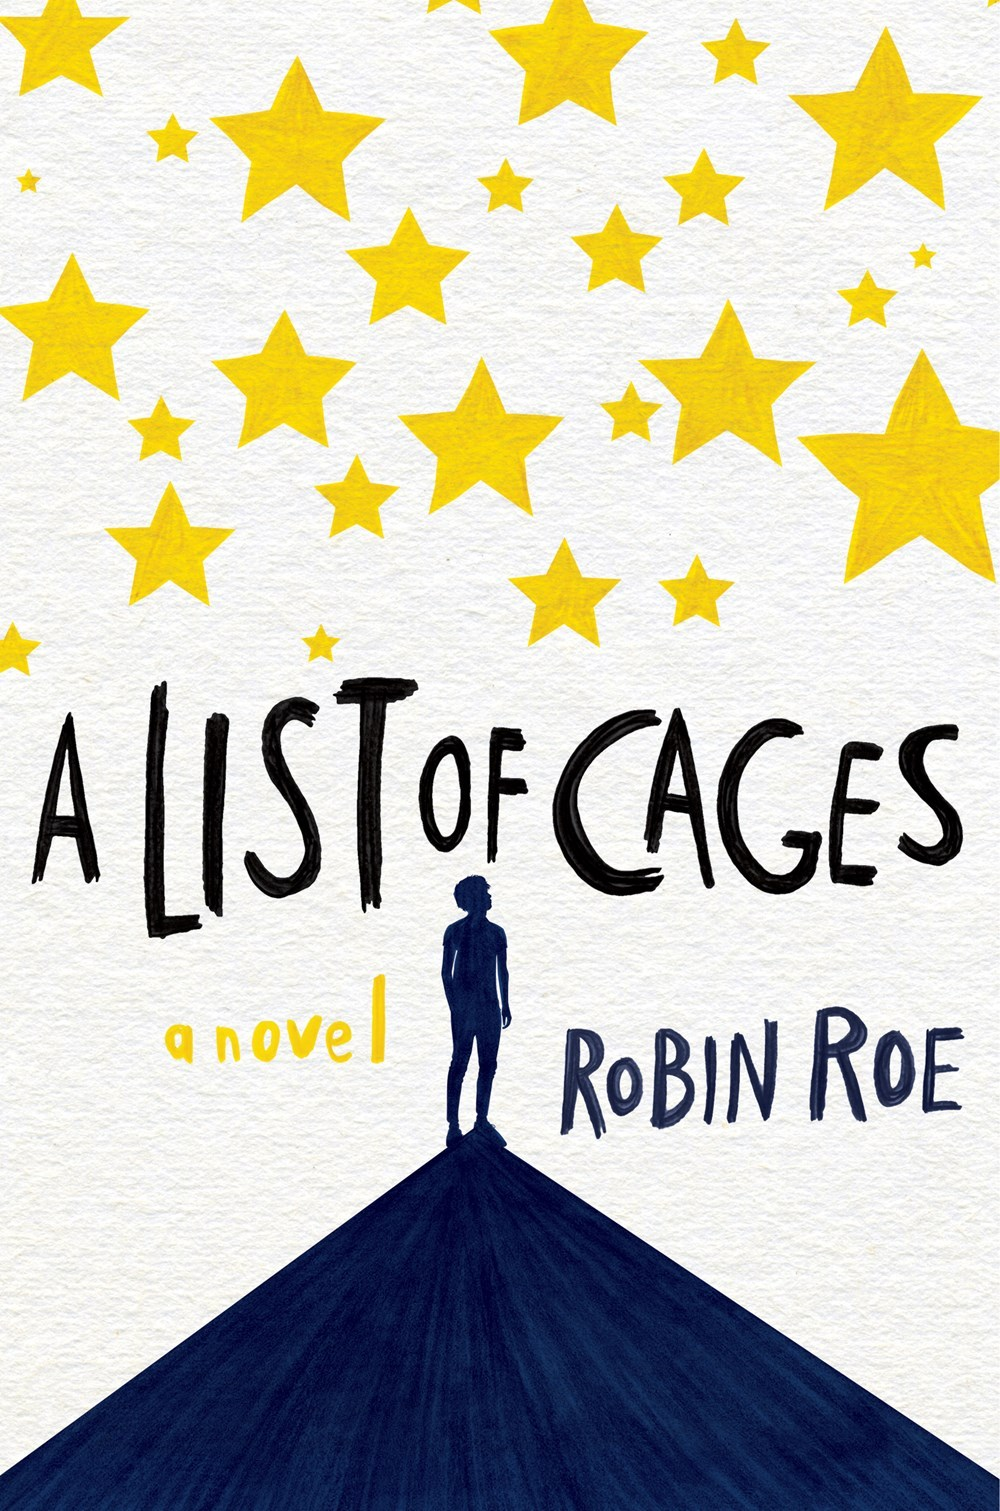 robin-roe-list-cages.jpeg